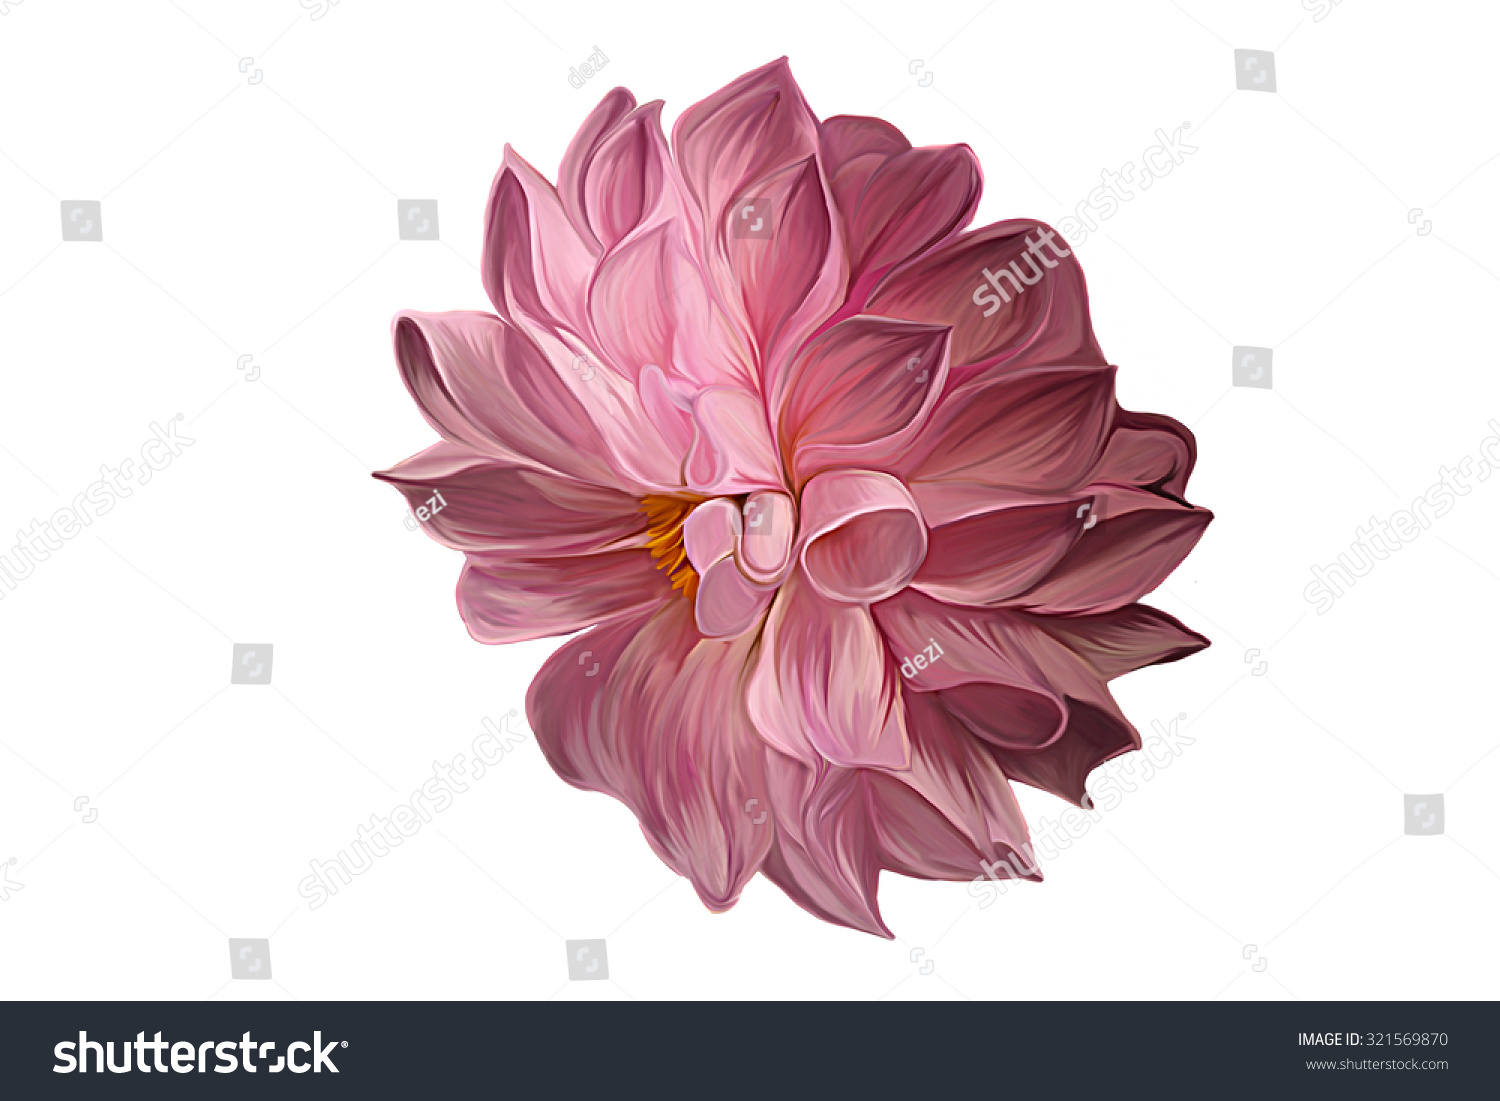 Drawing Oil Painting Dahlia Flower On Stock Illustration 321569870